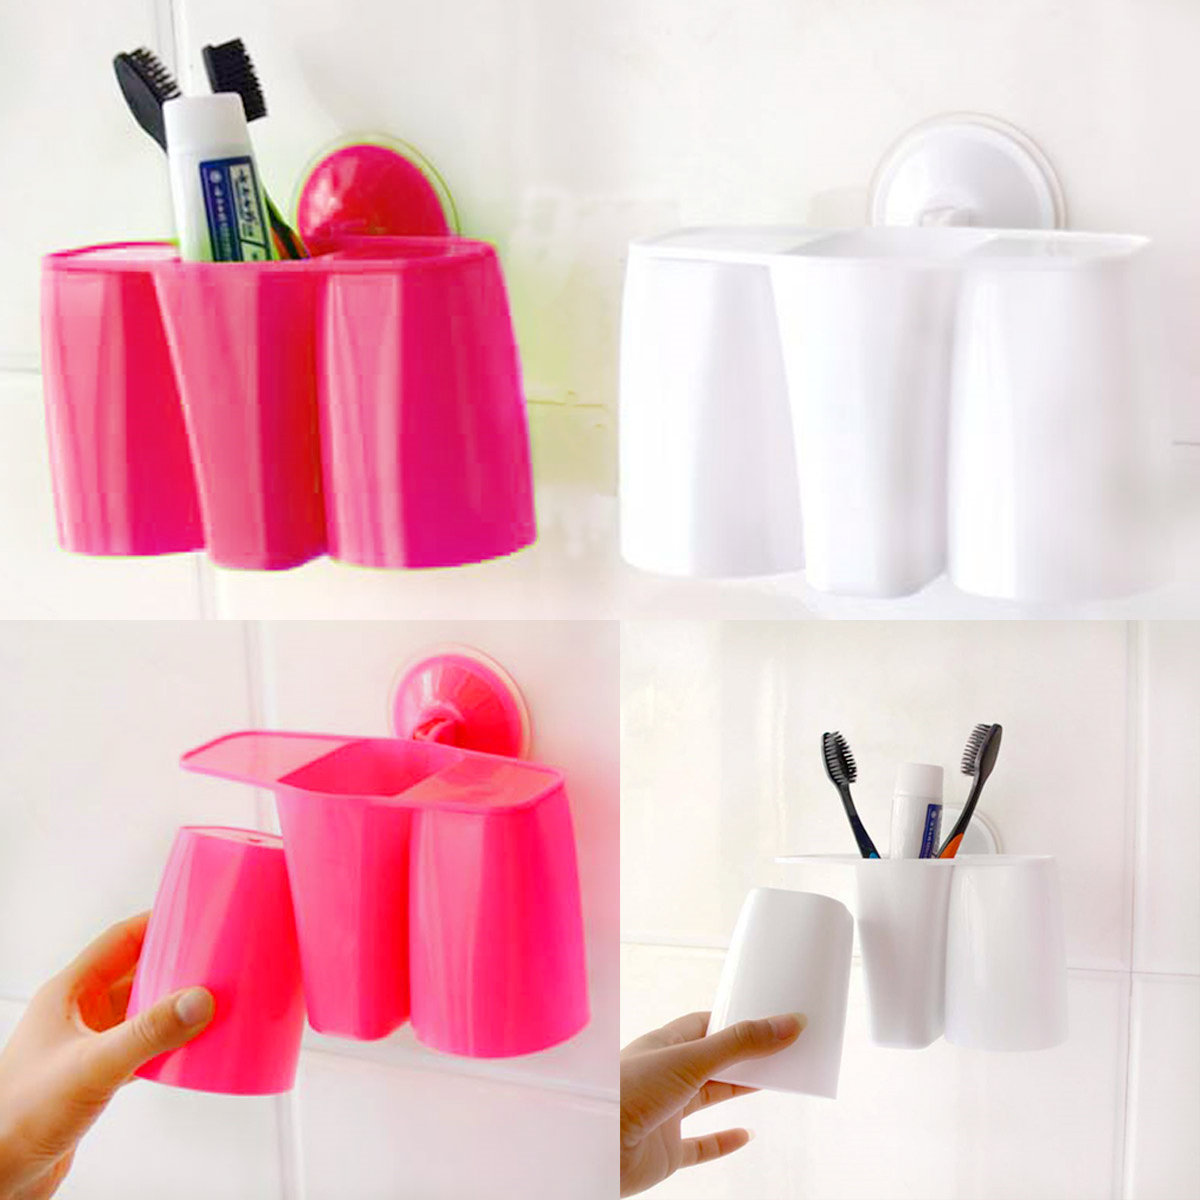 Creative Magnetic Sucker Toothbrush Holder Suction Cup Couples Holder Rack Supply